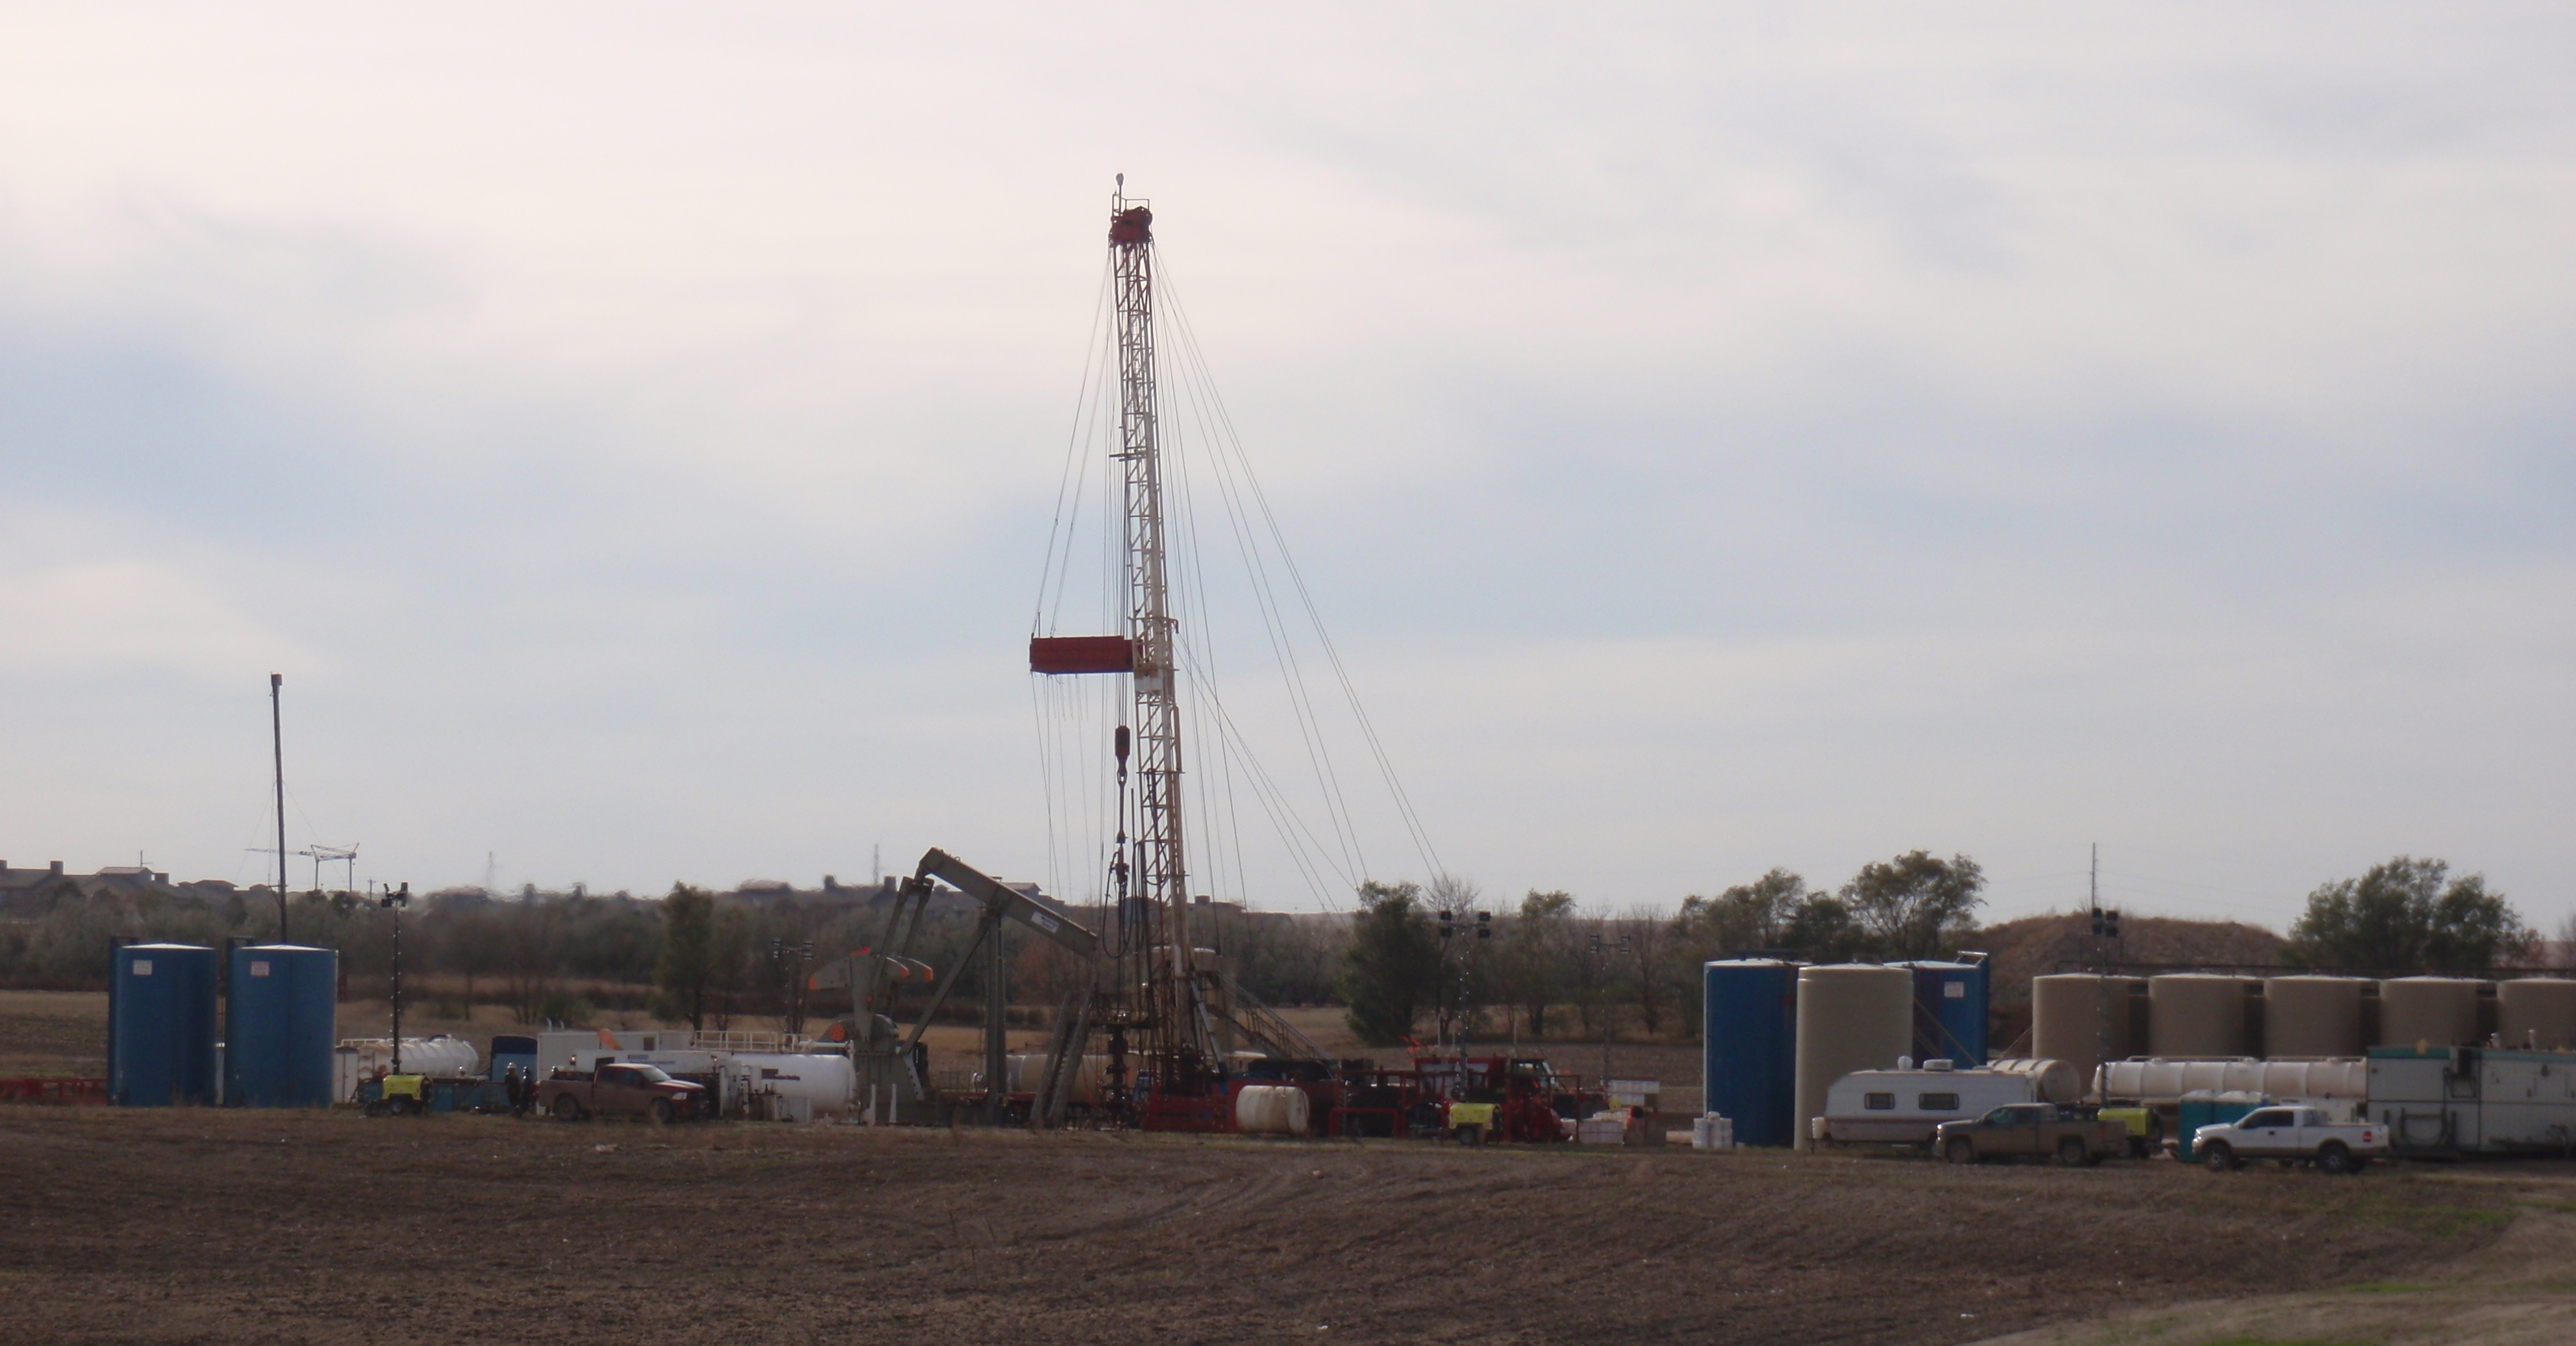 Workover rig in October 2014. Photo by James Ulvog.